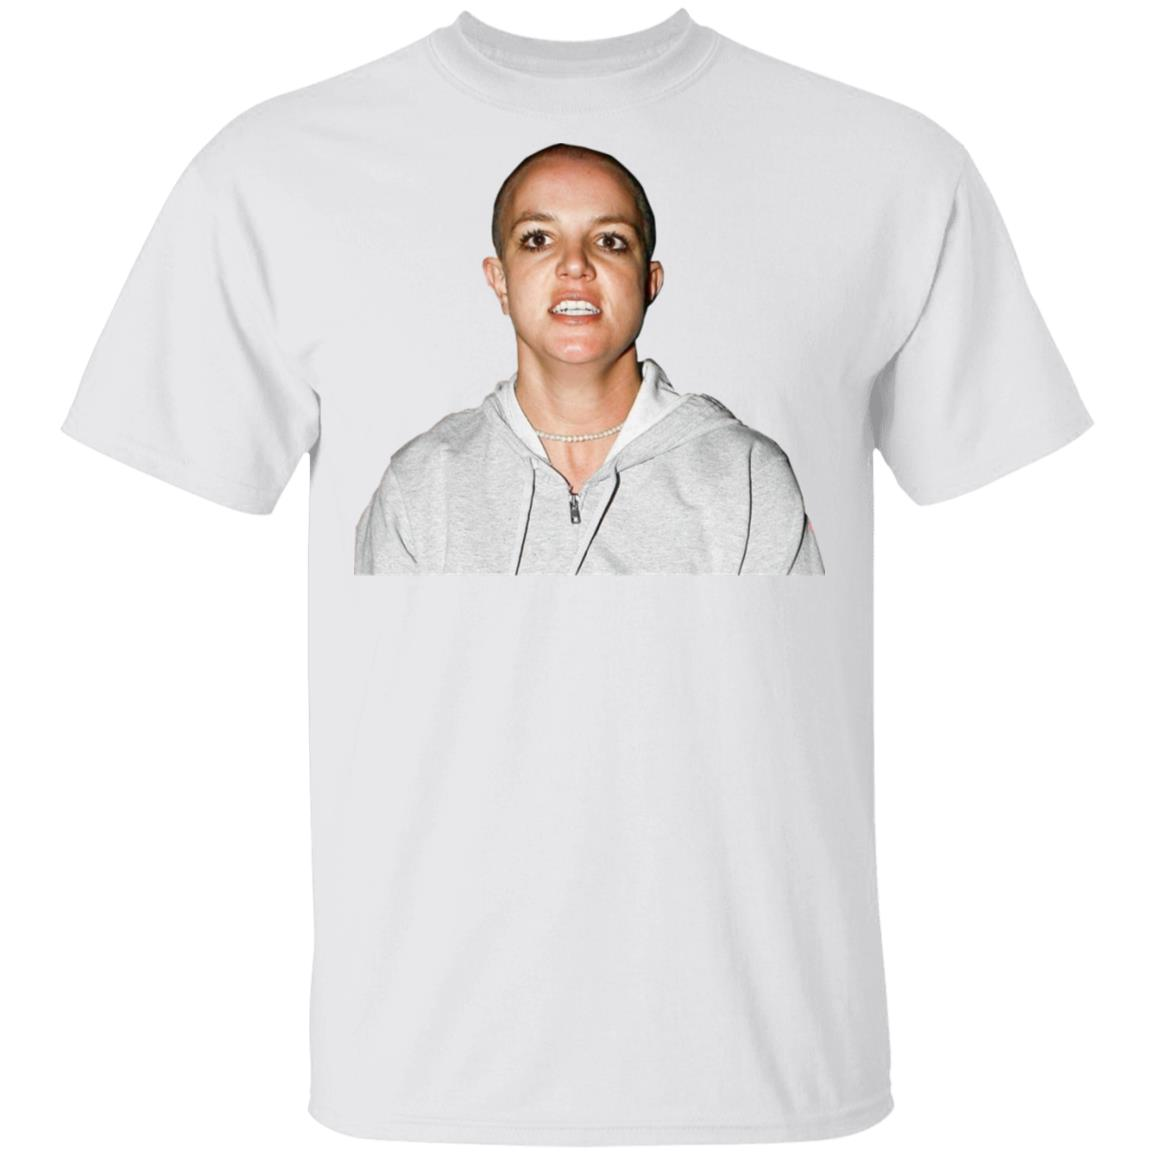 Britney spears shaved head t shirt